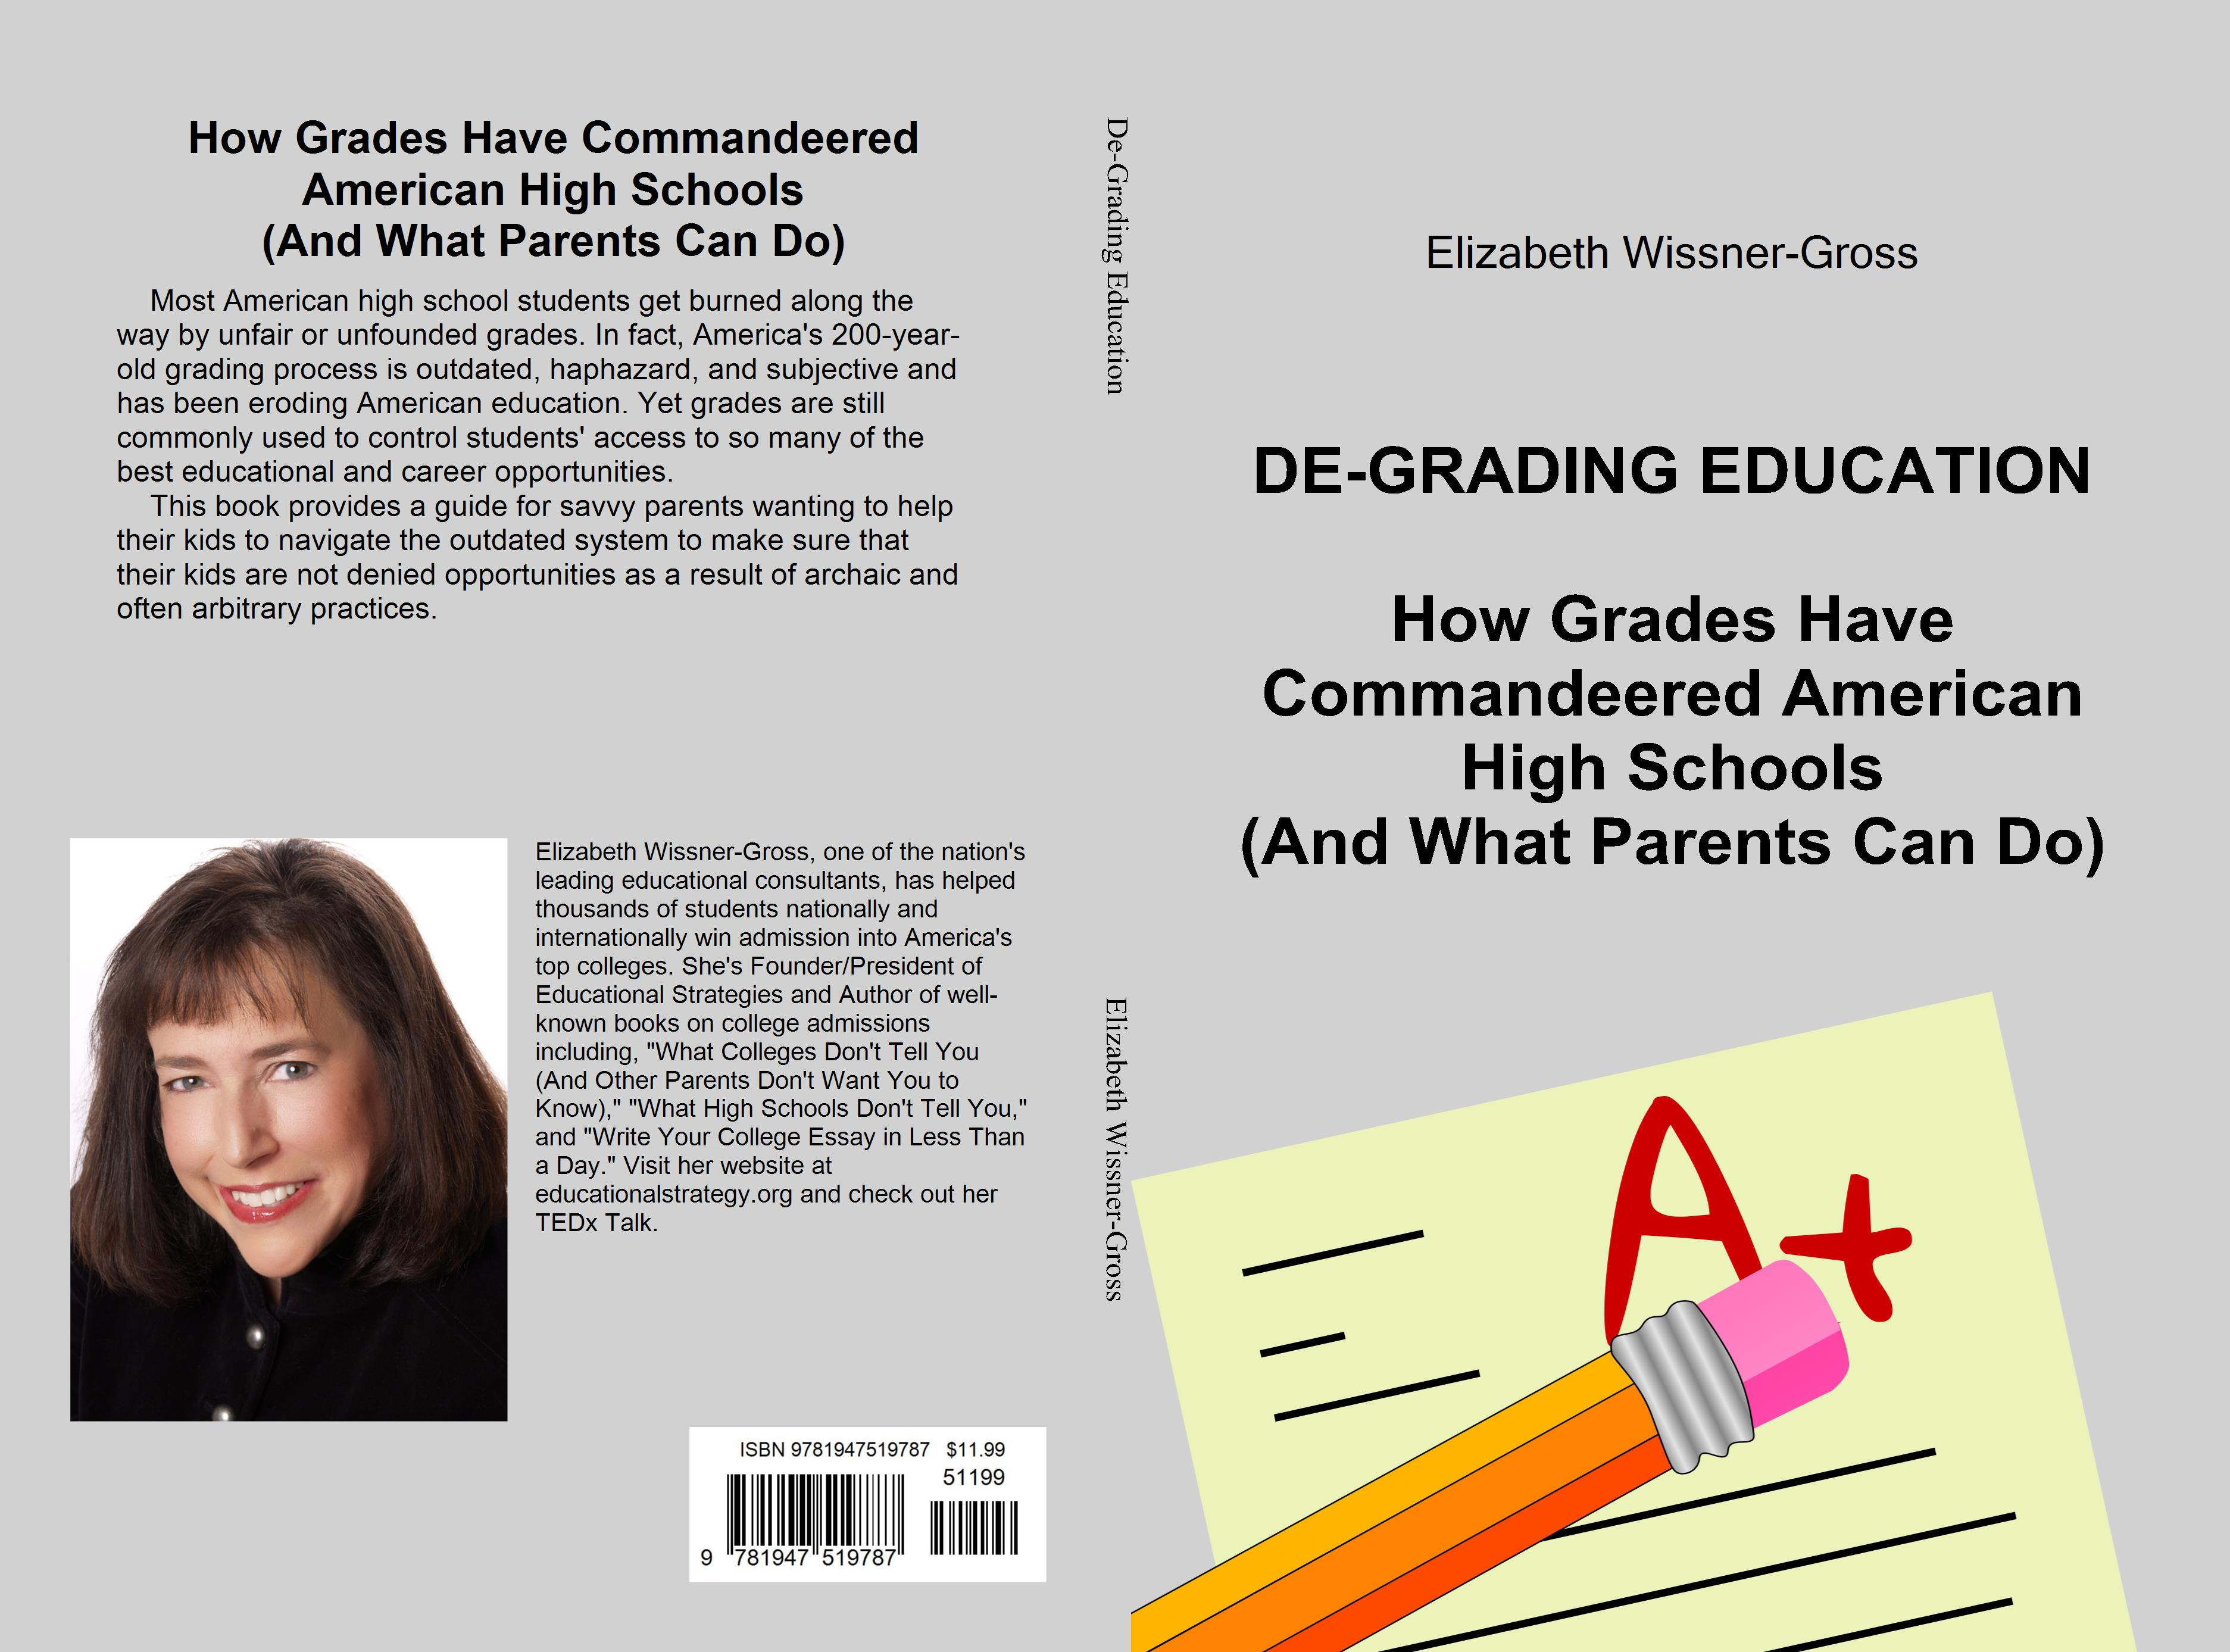 DE-GRADING EDUCATION How Grades Have Commandeered American High Schools (And What Parents Can Do) cover image